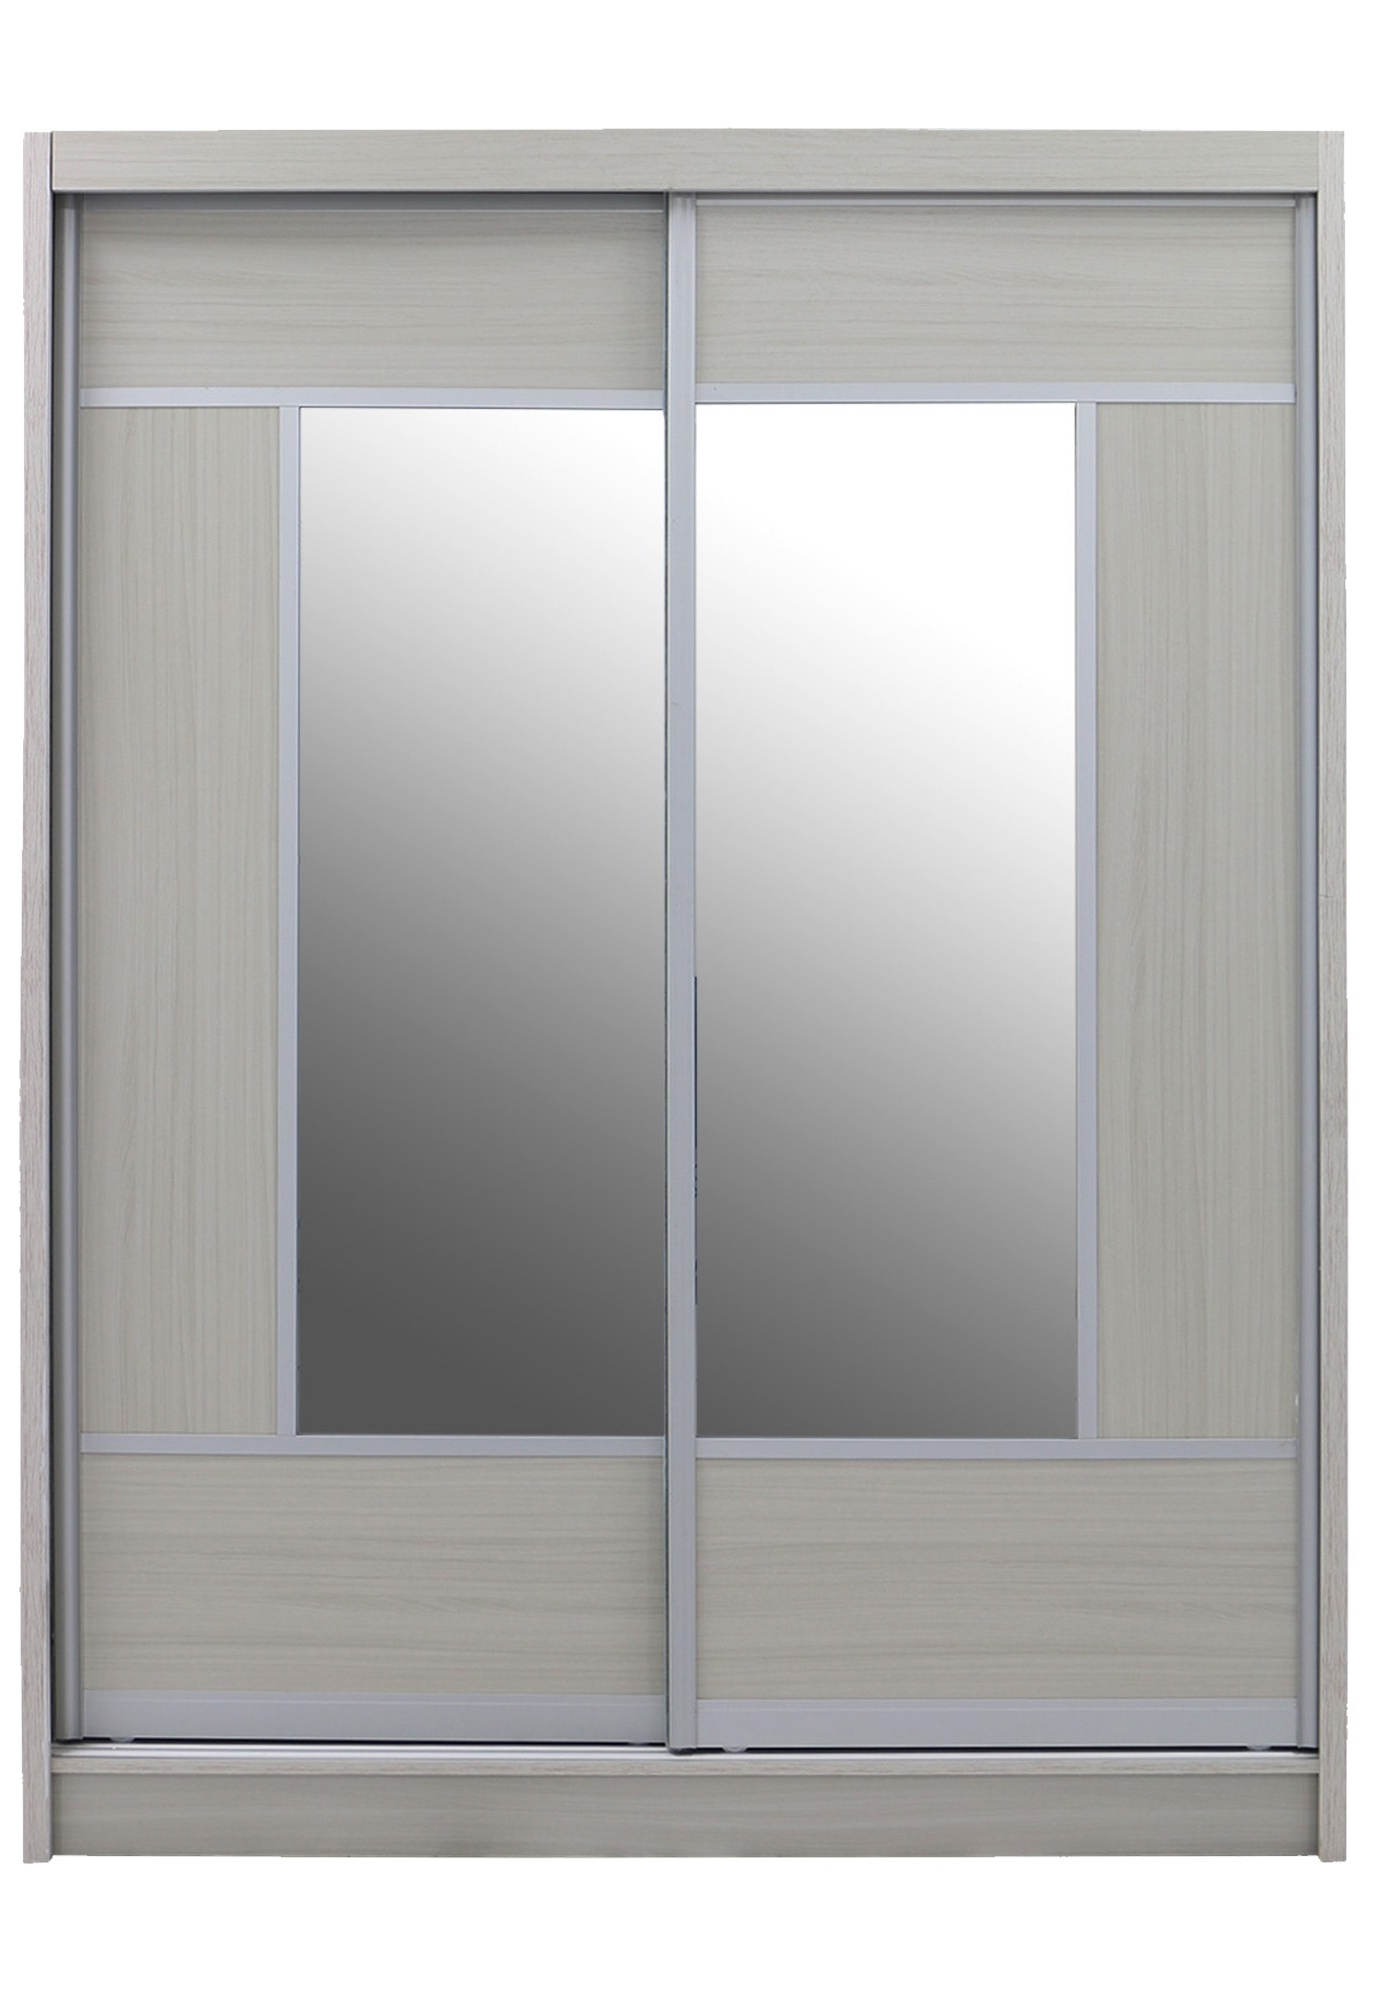 Fashionable Whitewash Wardrobes Regarding Alfred Sliding Door Wardrobe 5Ft White Wash (View 2 of 15)